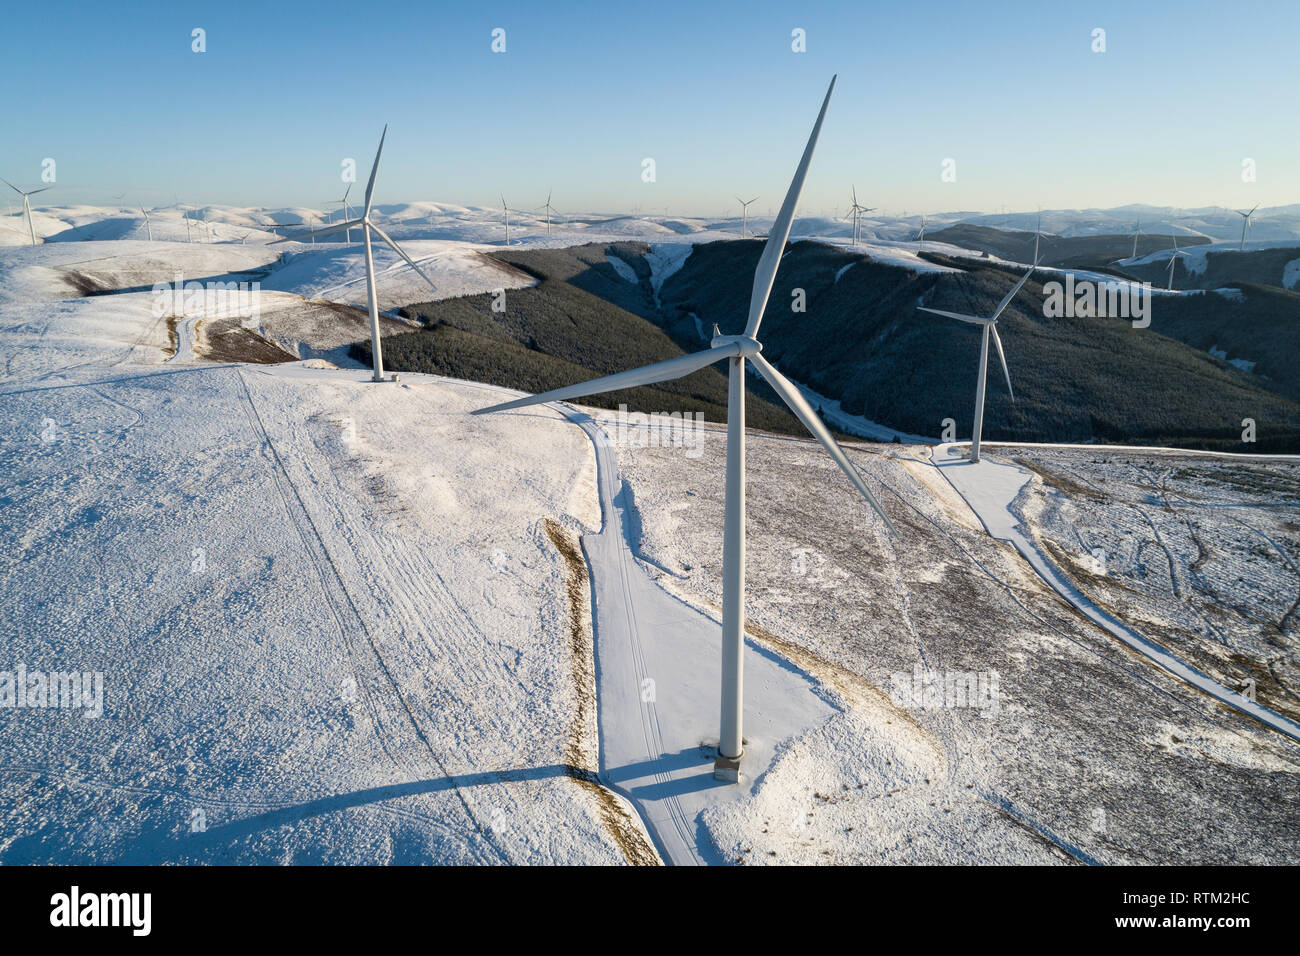 Aerial image of the Clyde Wind Farm Extension in snow on a bright winter day. The Clyde Farm is a 206 turbine 512 megawatt development in Scotland. - Stock Image